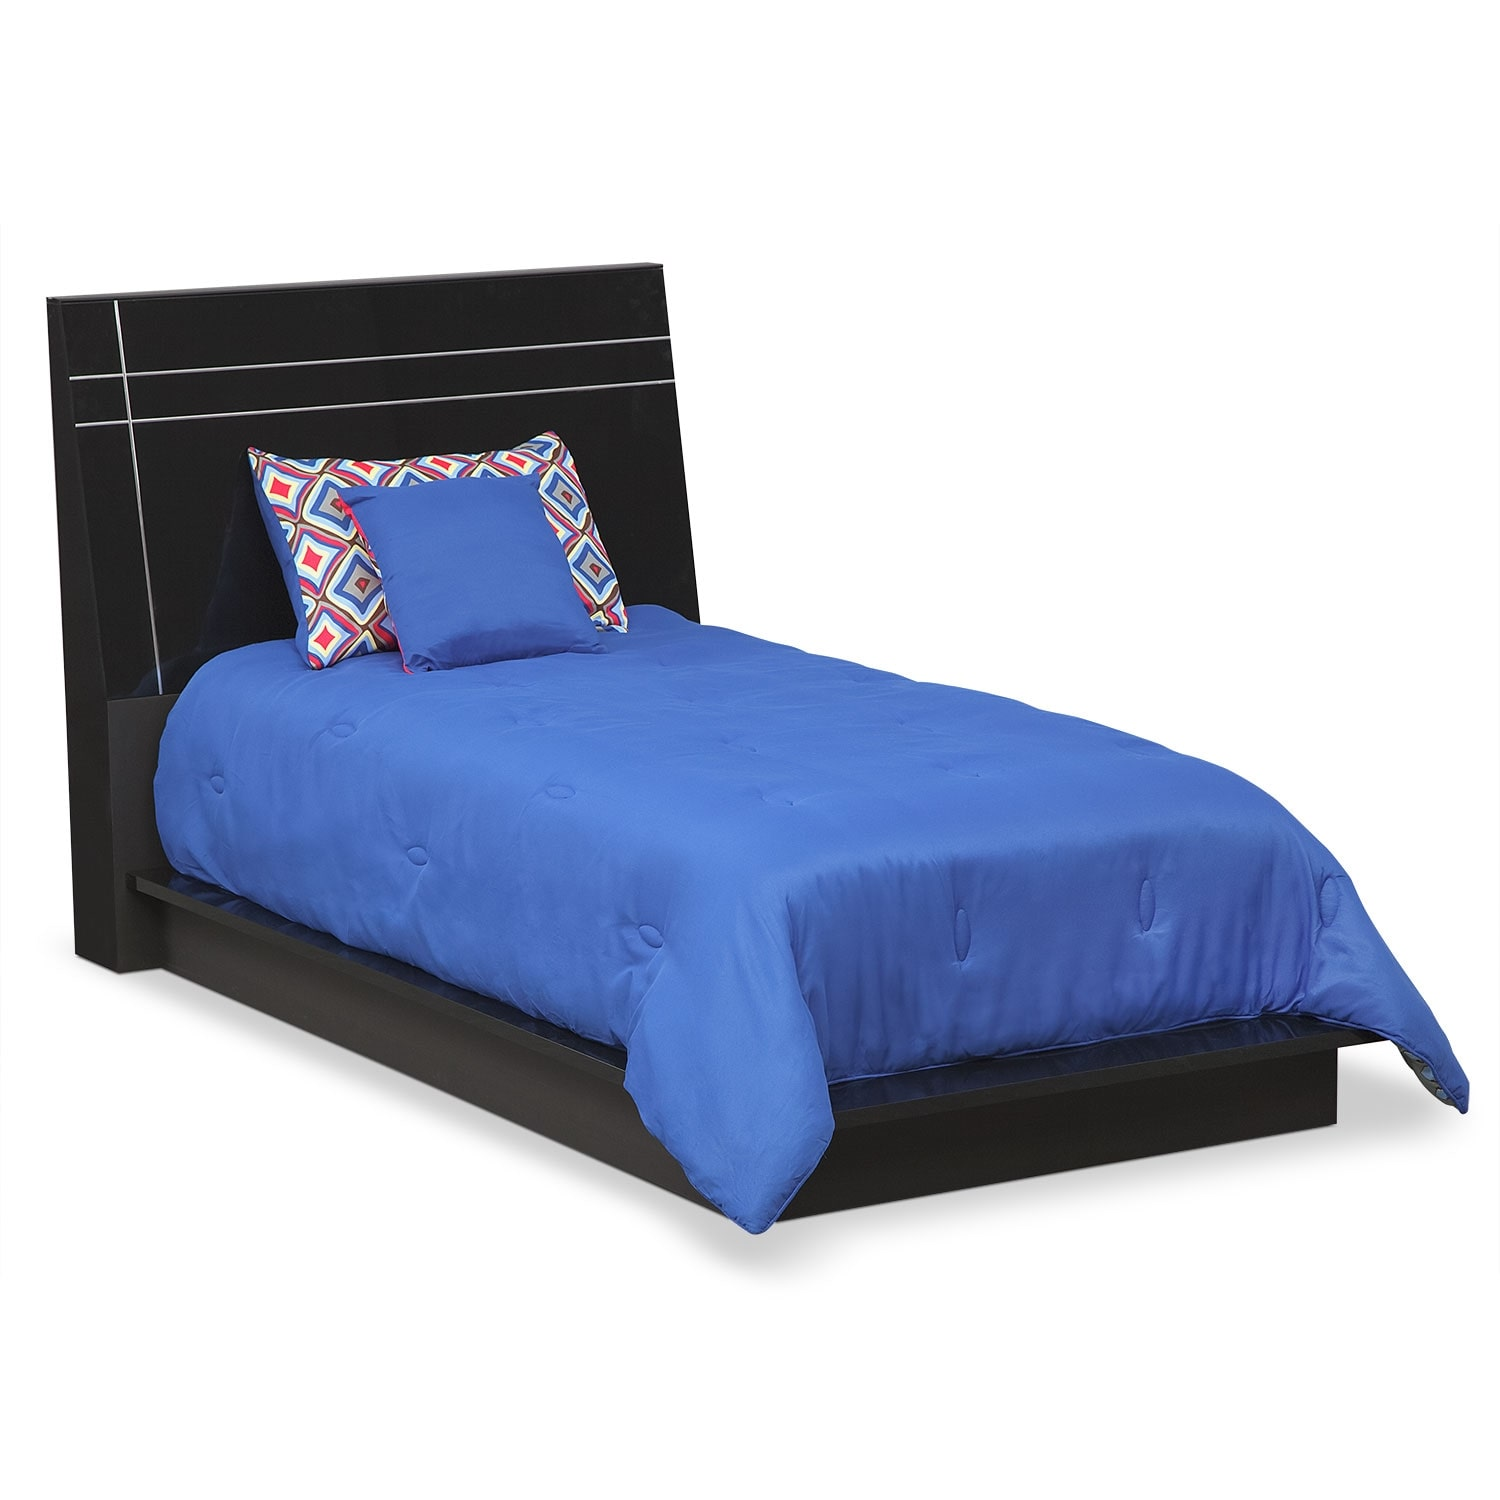 Dimora black ii twin bed value city furniture Black twin bed